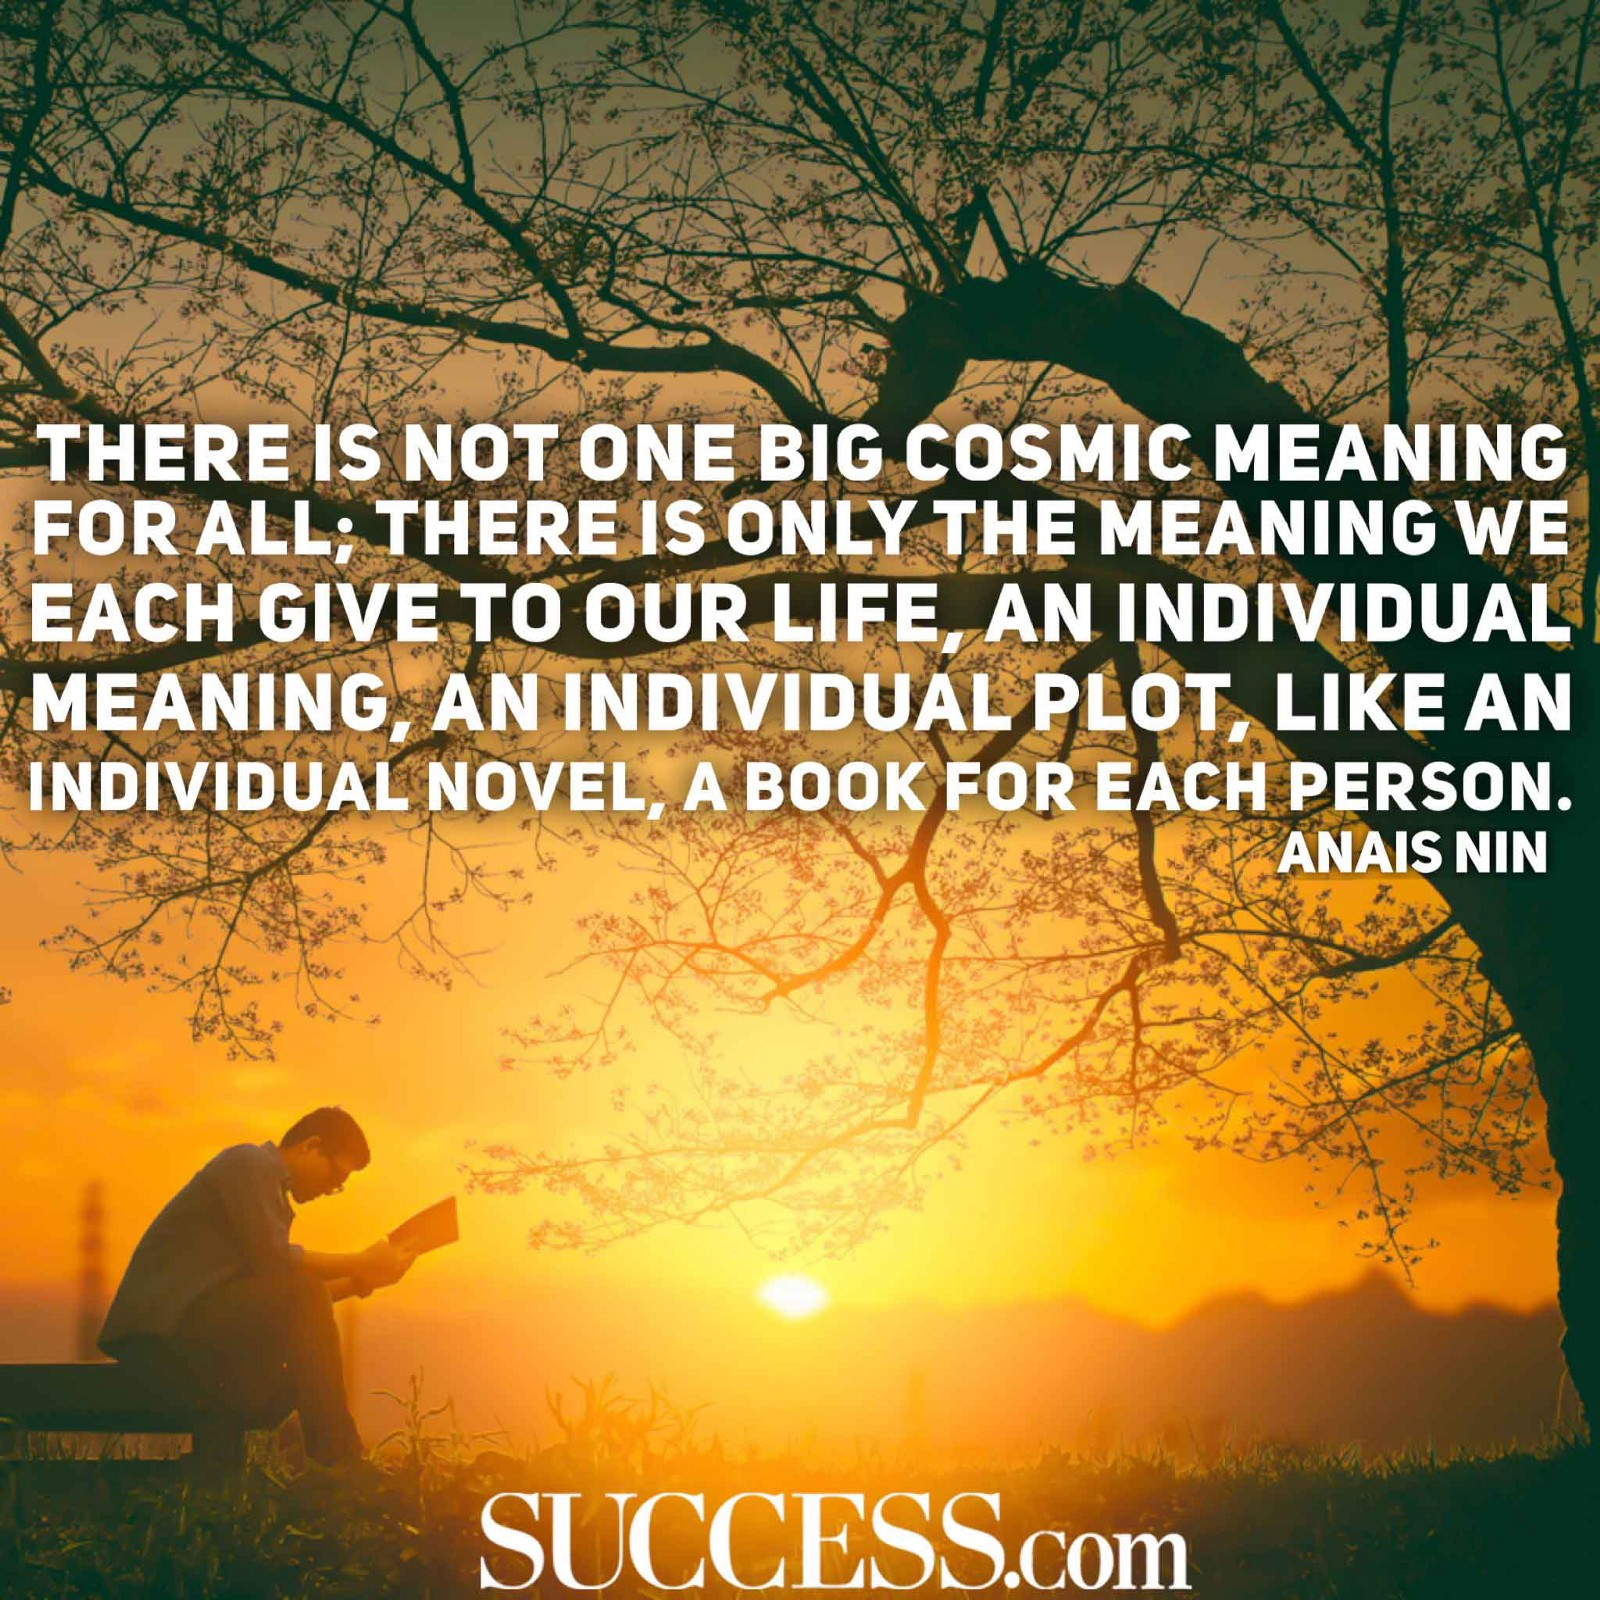 The Meaning Of Life Quotes The Meaning Of Life In 15 Wise Quotes  Success Magazine  Medium